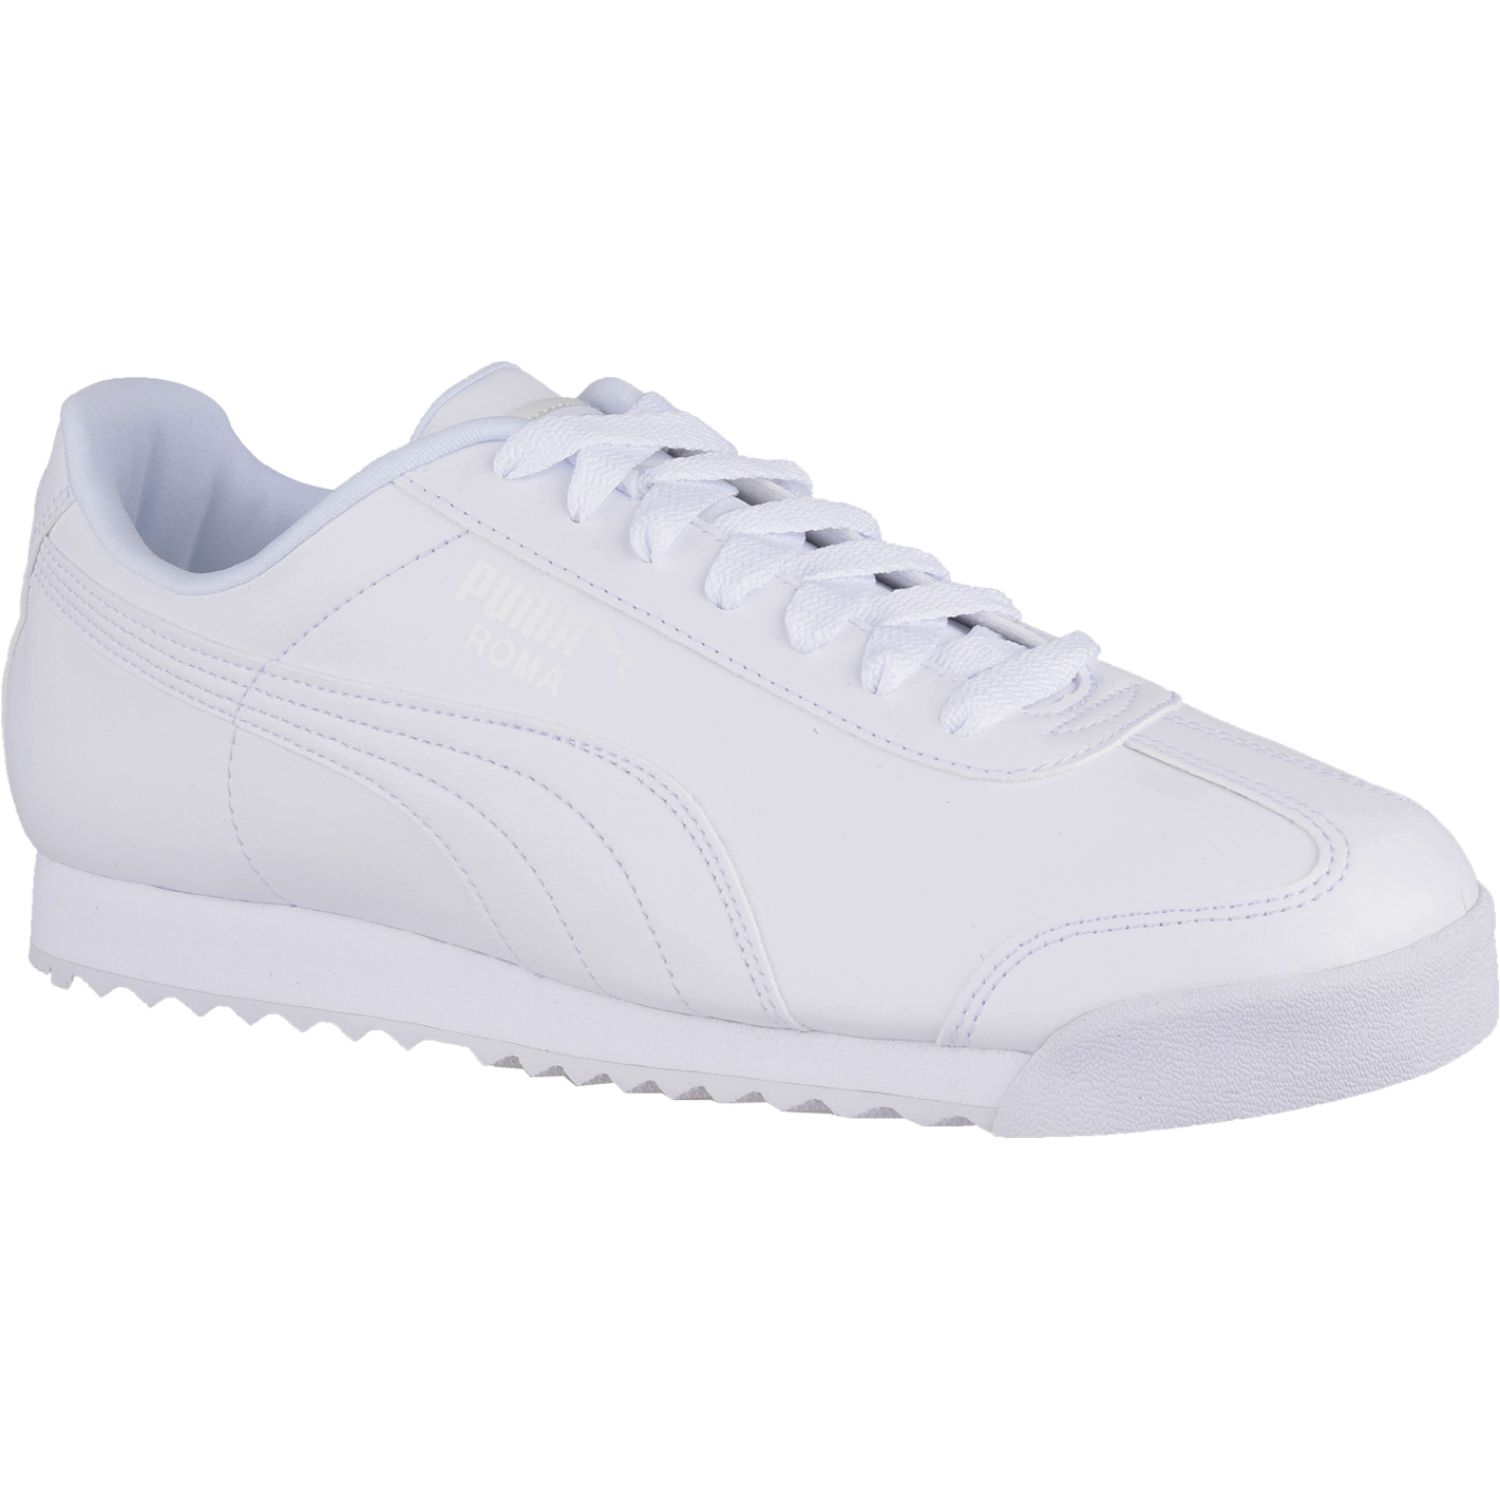 Puma ROMA BASIC Blanco Walking | platanitos.com